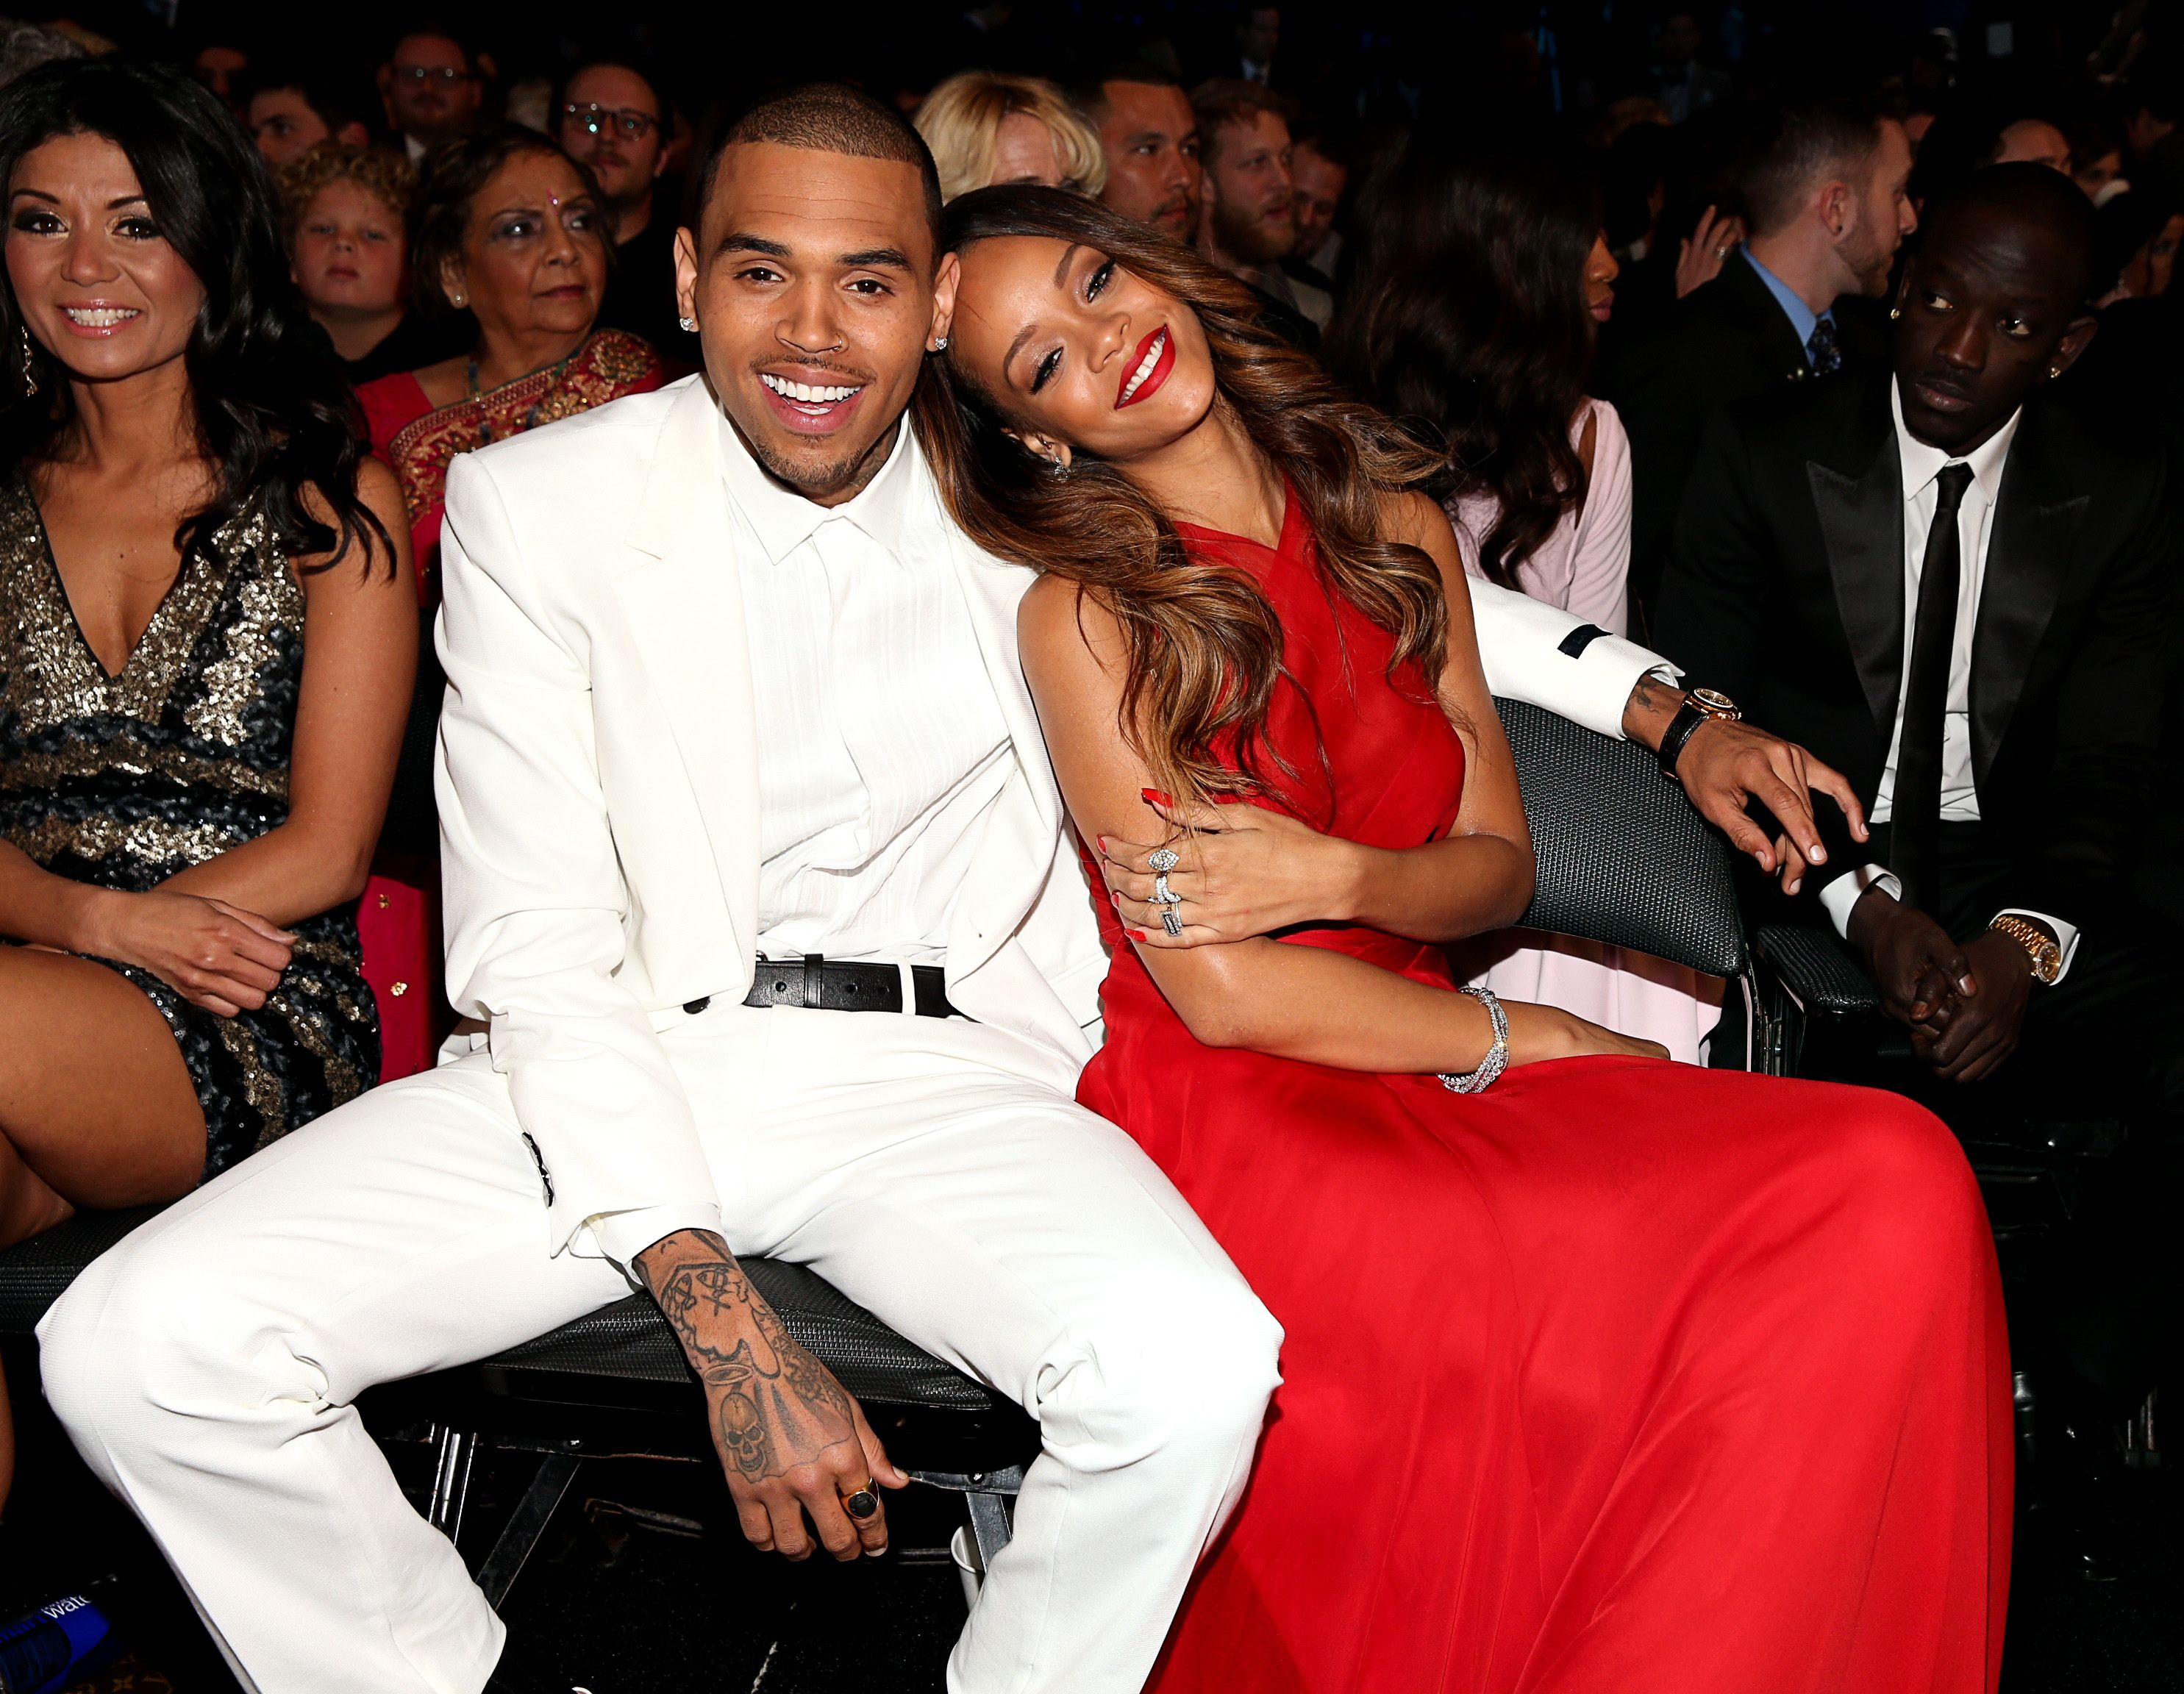 Is chrisbrown and rihanna still dating